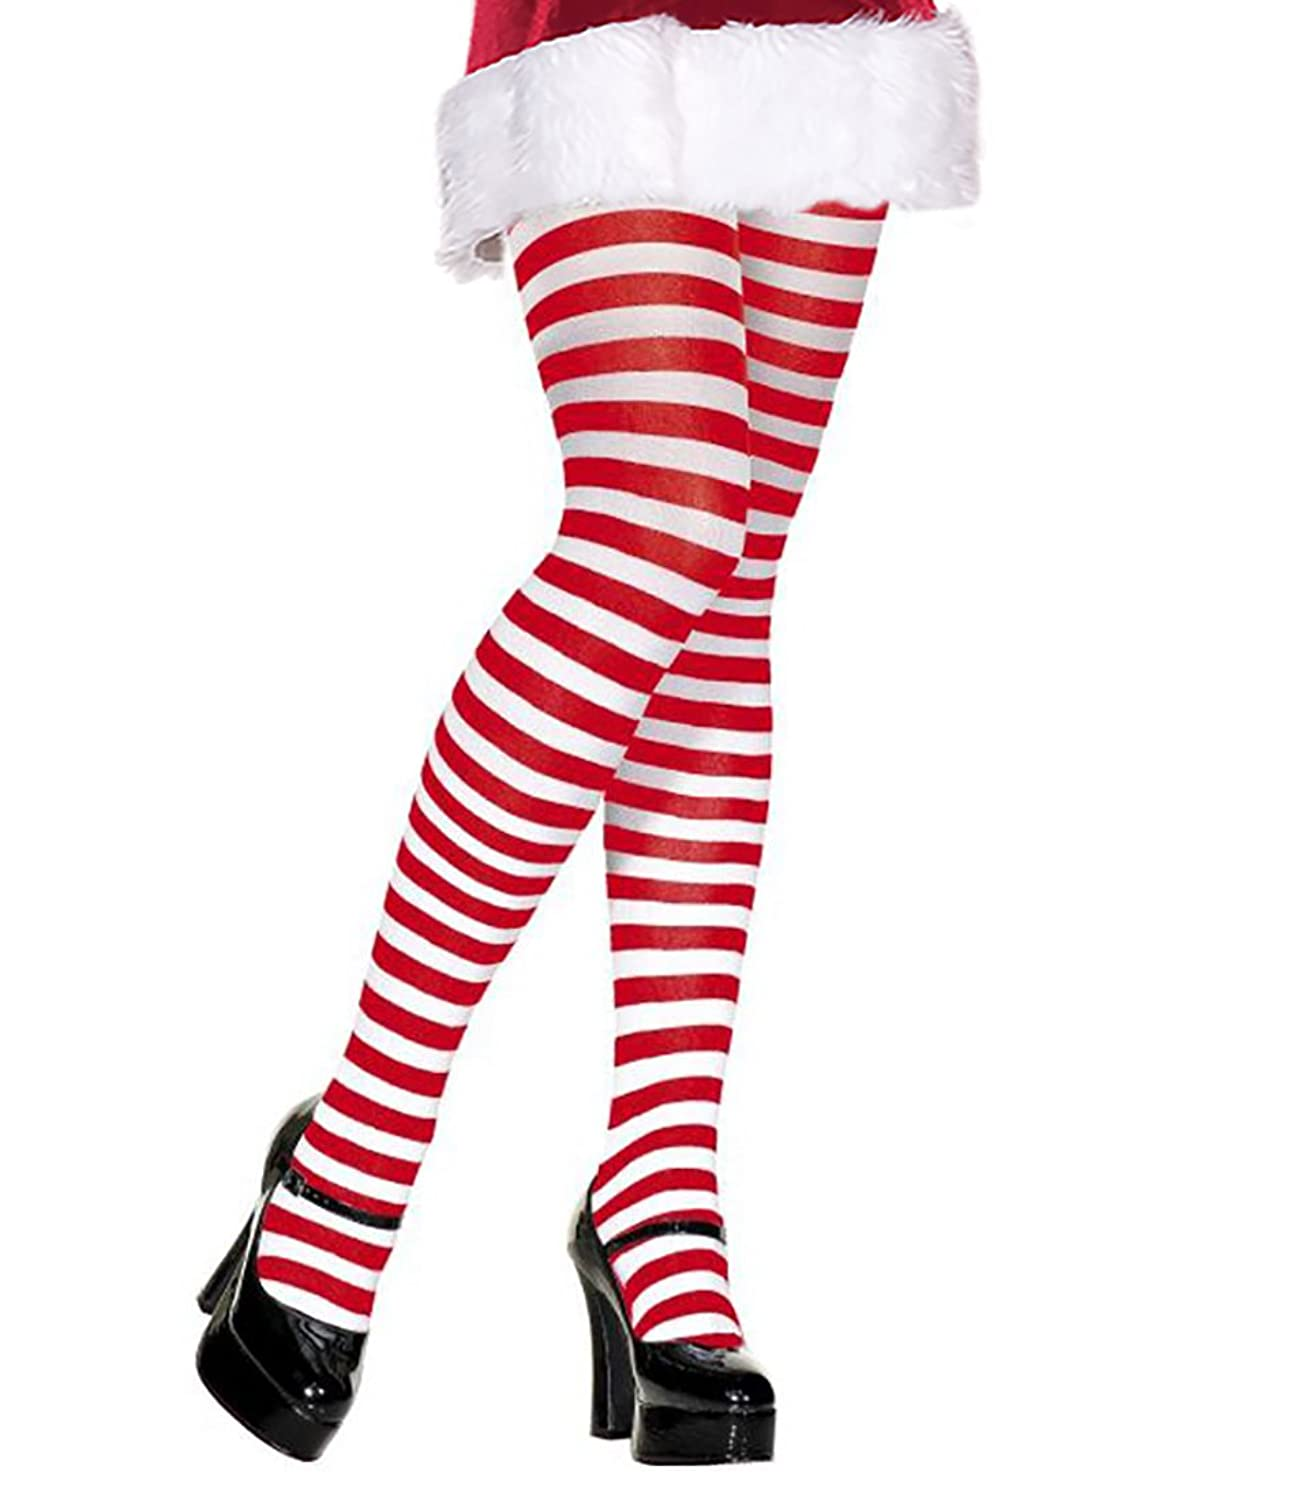 b48322309c4fe One pair of red and white striped tights pantyhose for women. - Add a pair  of Elf shoes or Christmas Shoes to complete your Elf or Mrs. Clause Costume  Look.